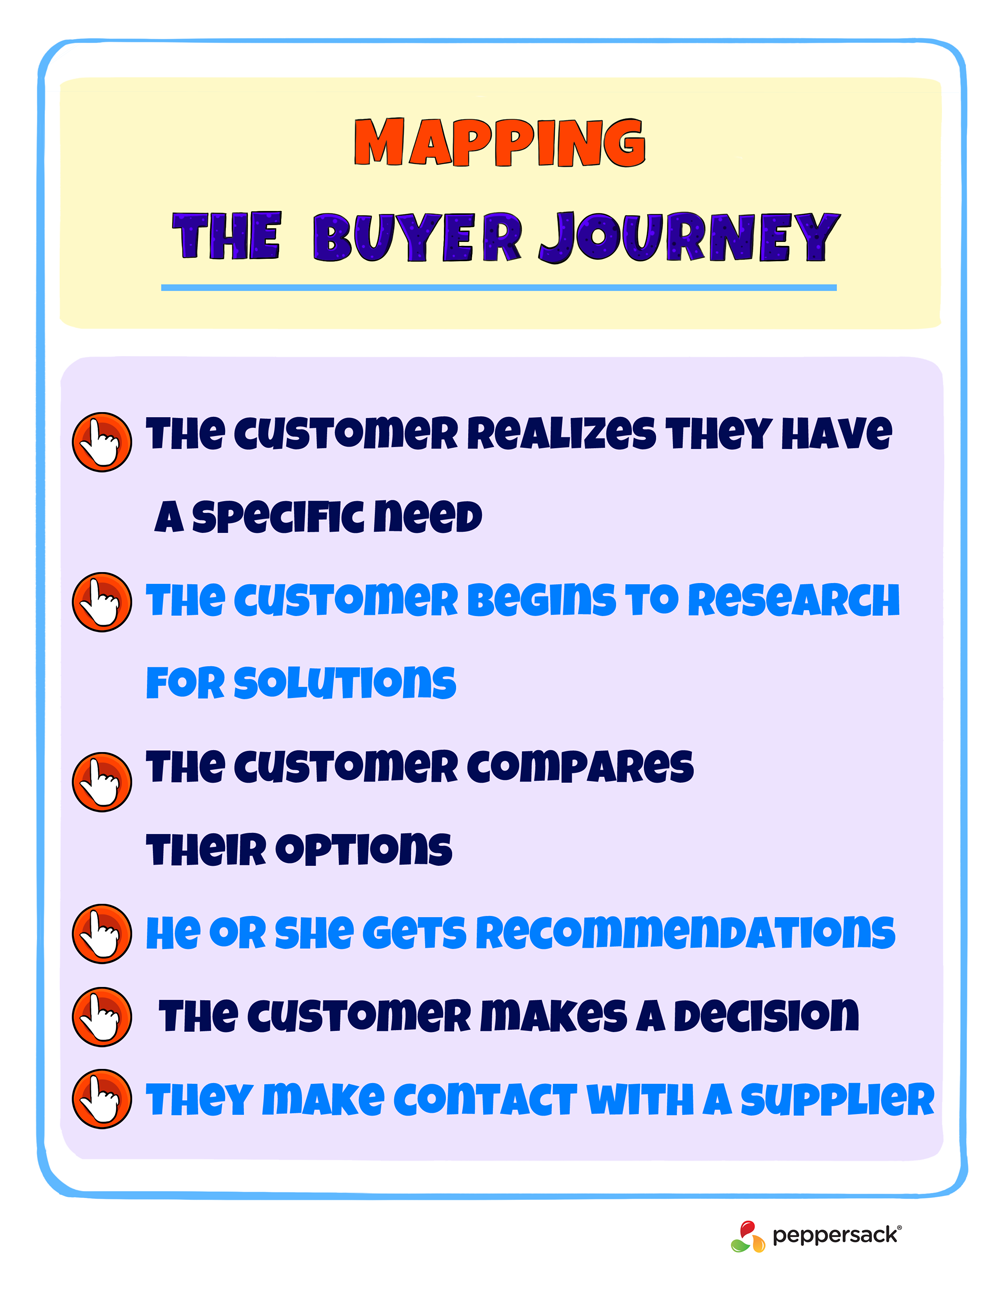 Mapping the buyer journey